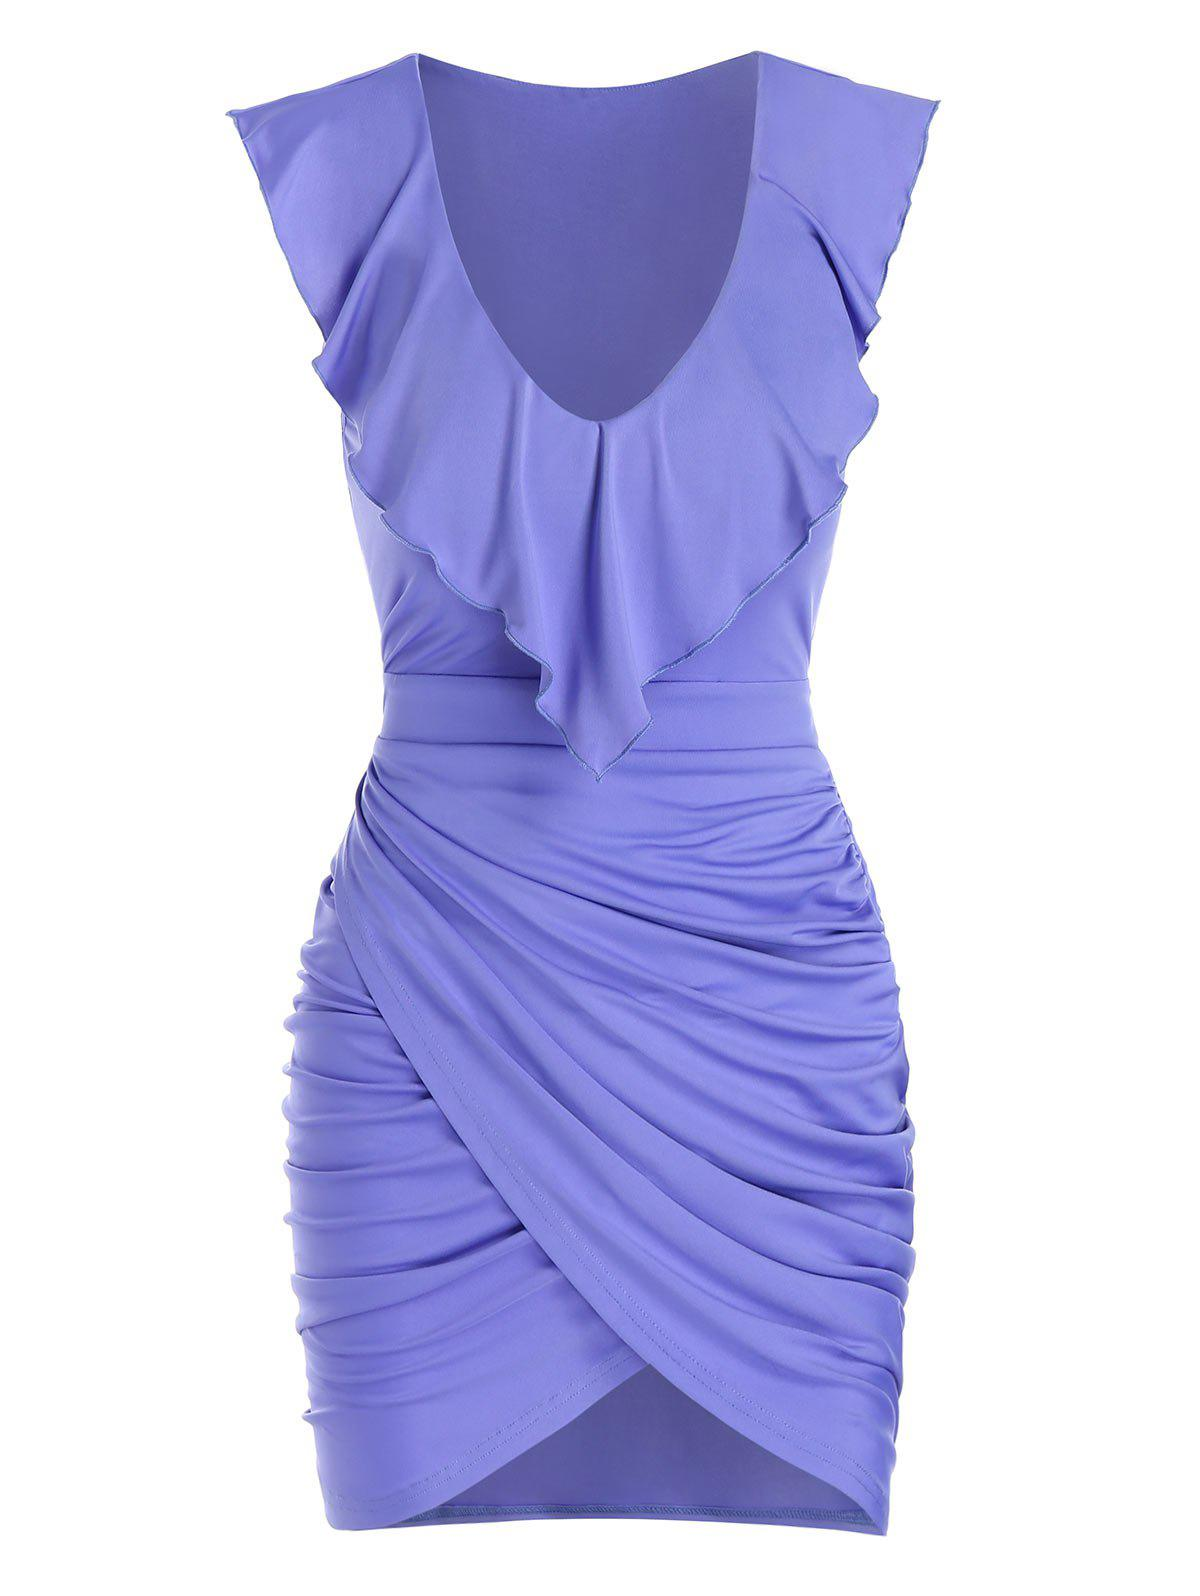 Sleeveless Ruched Tulip Sheath Dress - PURPLE L